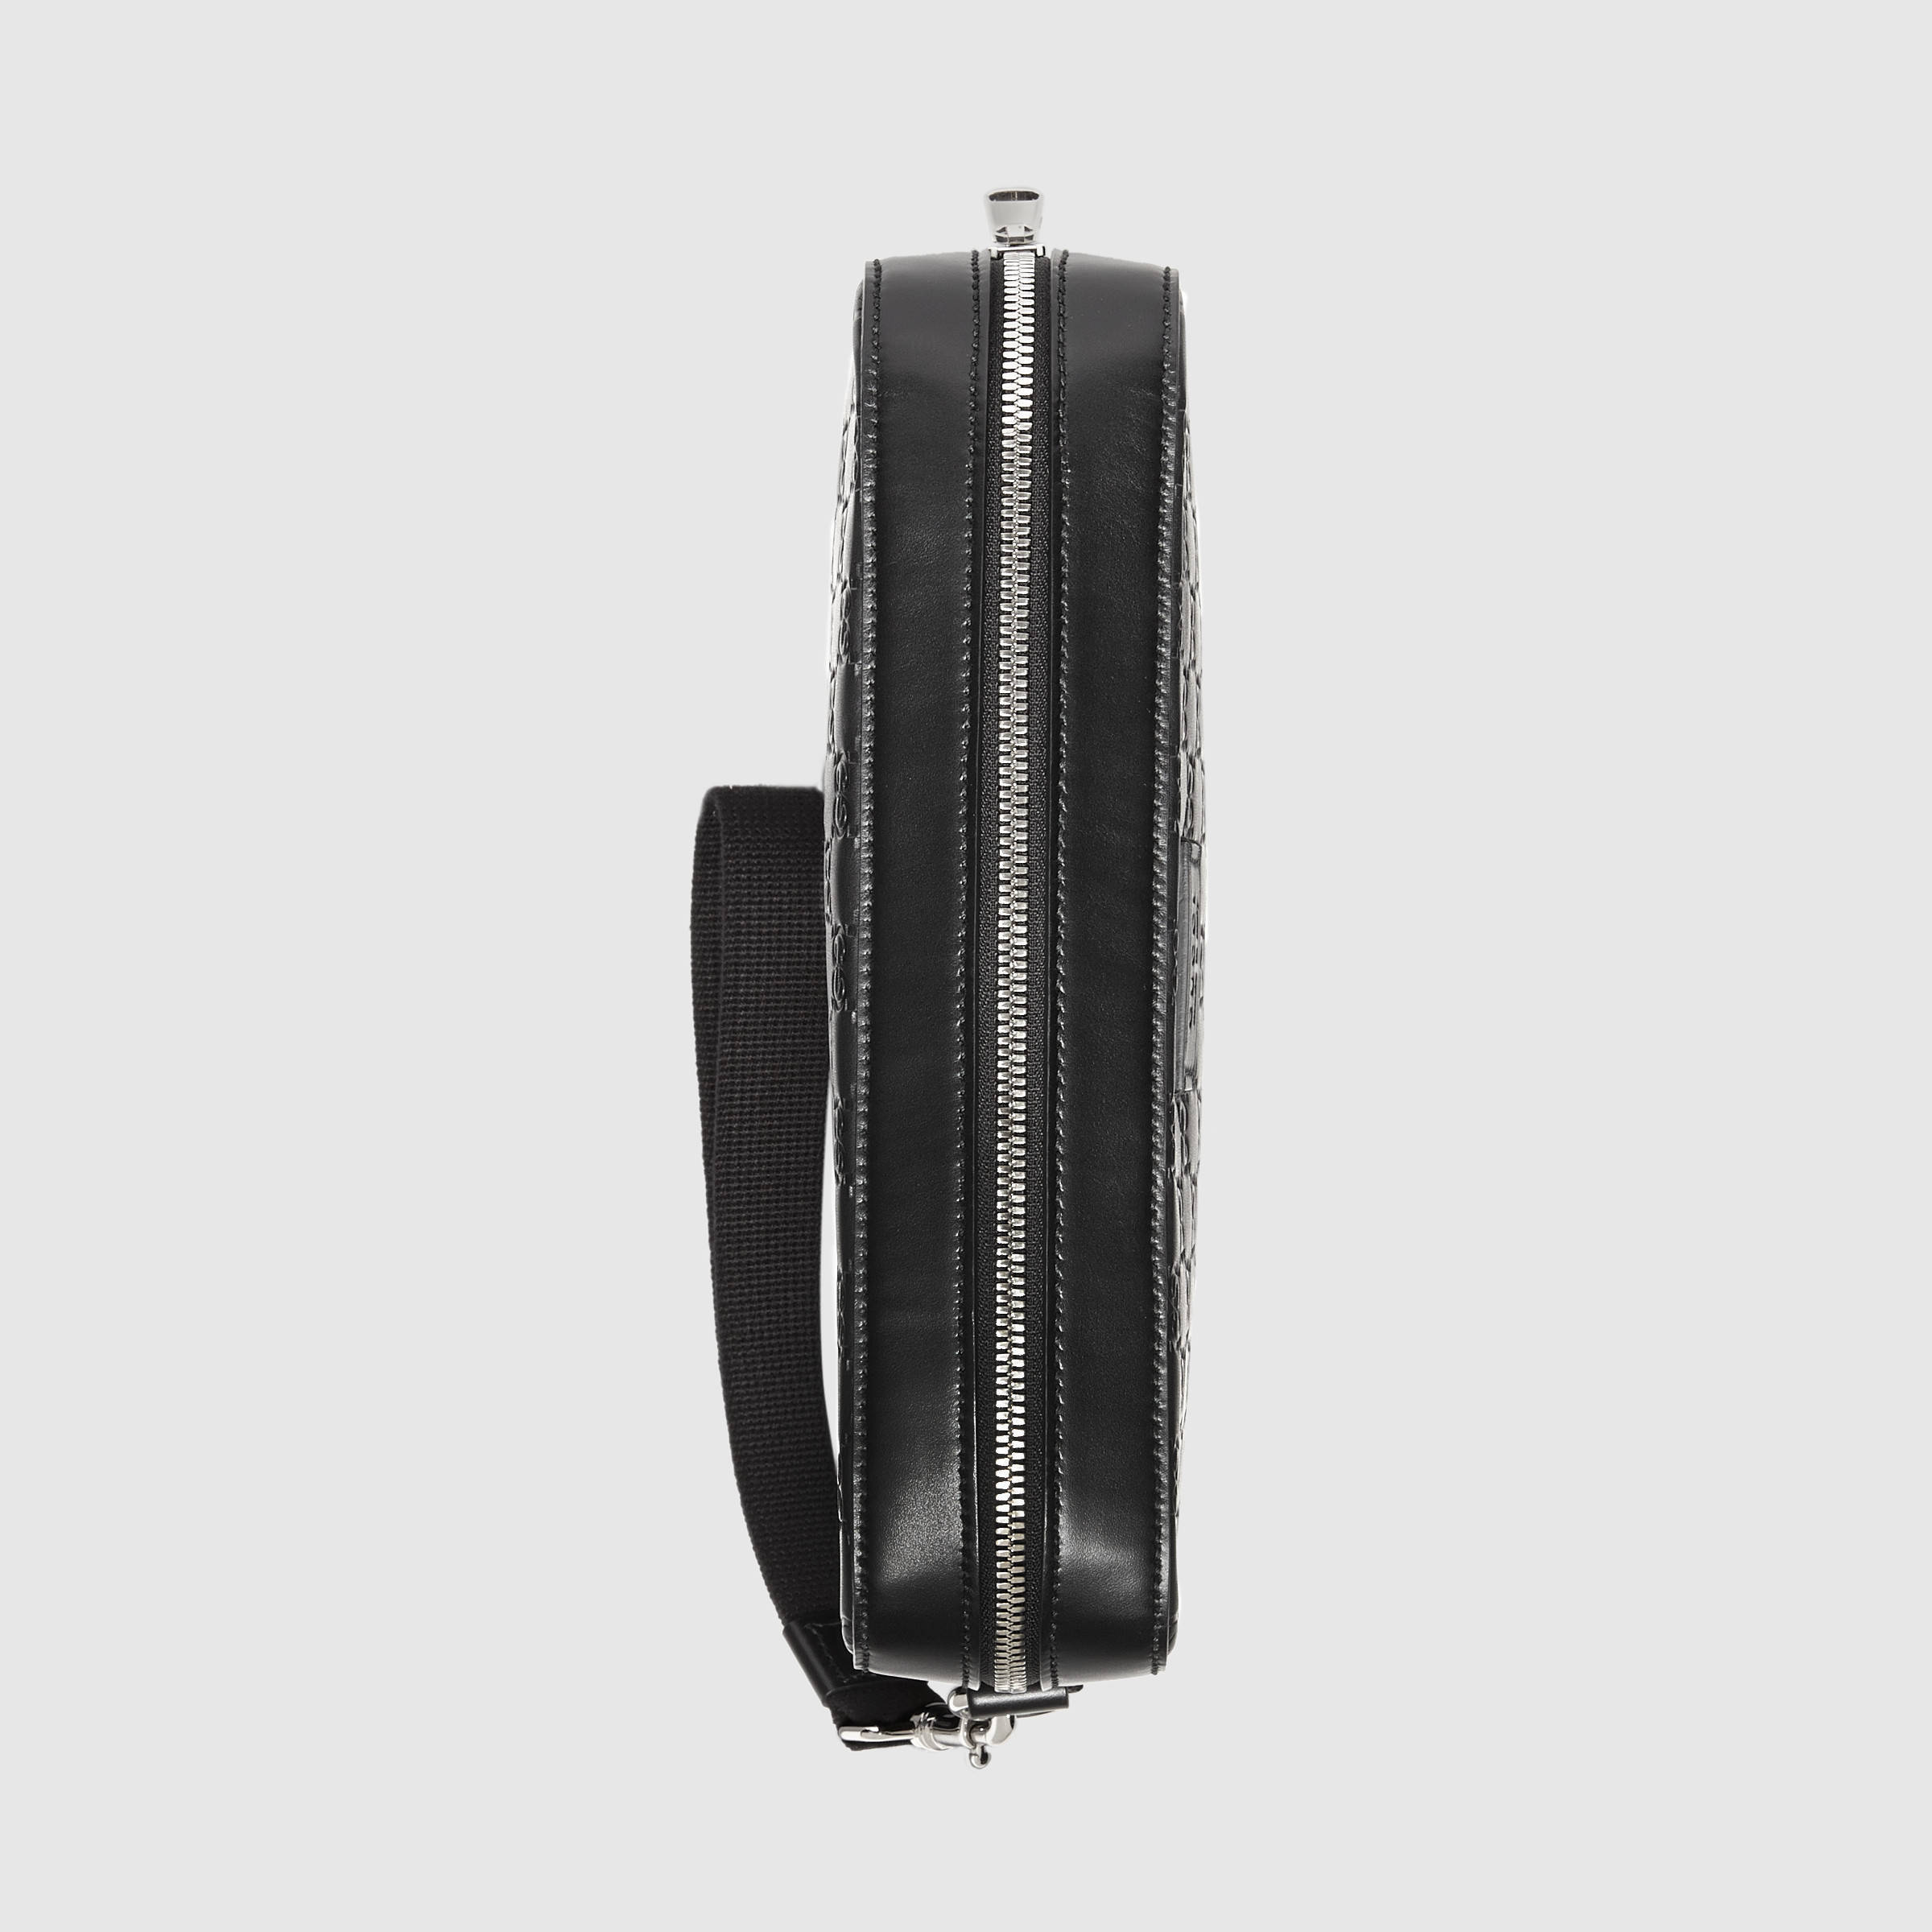 【グッチ】Gucci Signature Leather MenS Bag 長財布